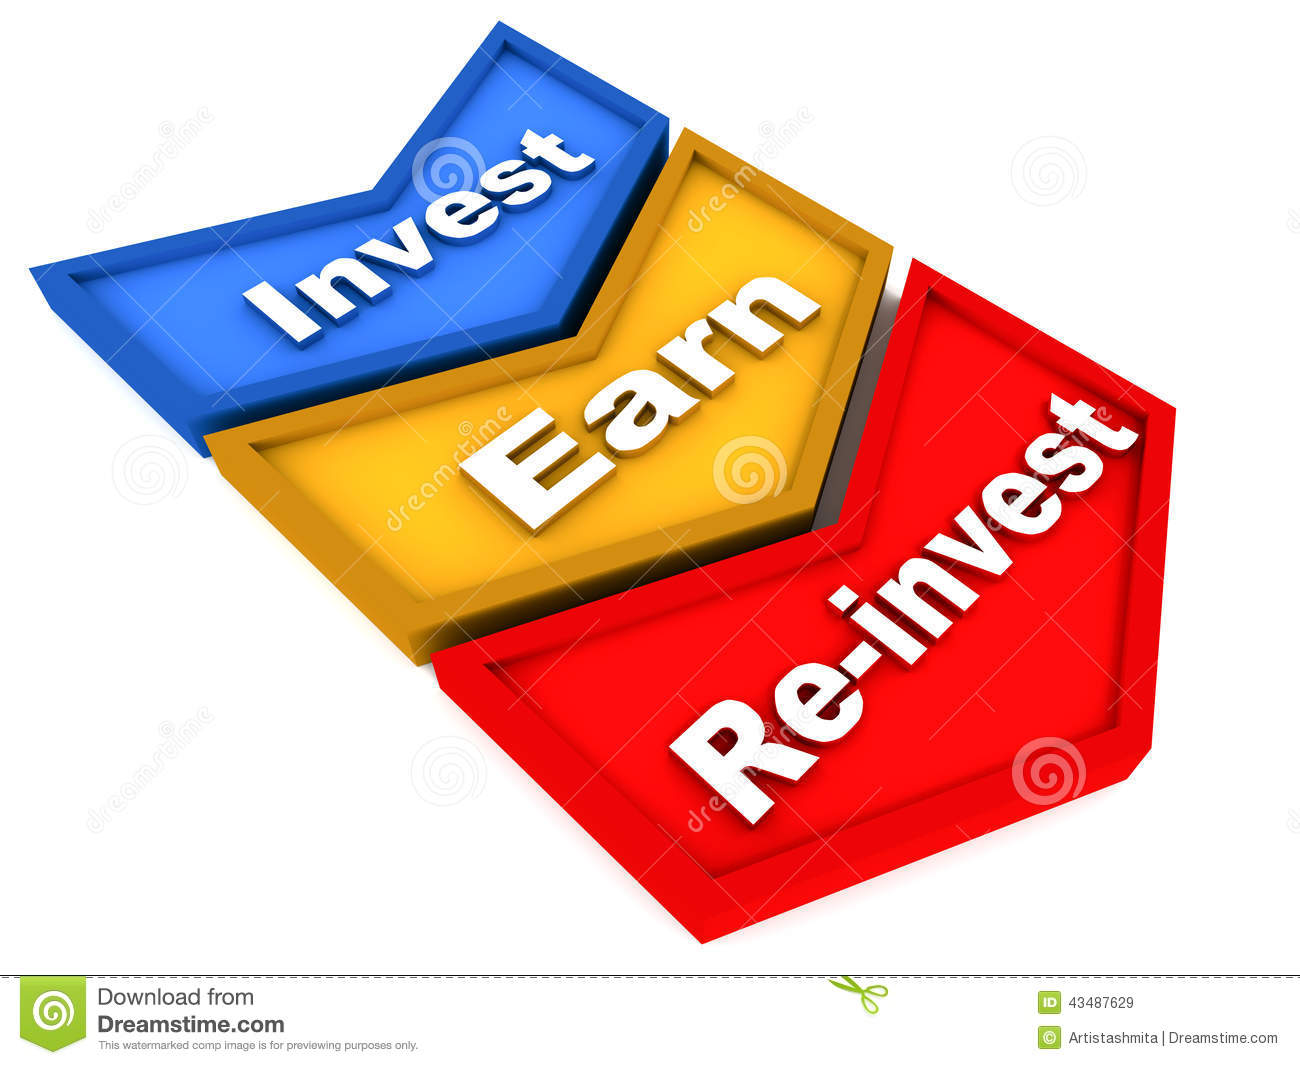 Reinvest Stock Illustration - Image: 43487629